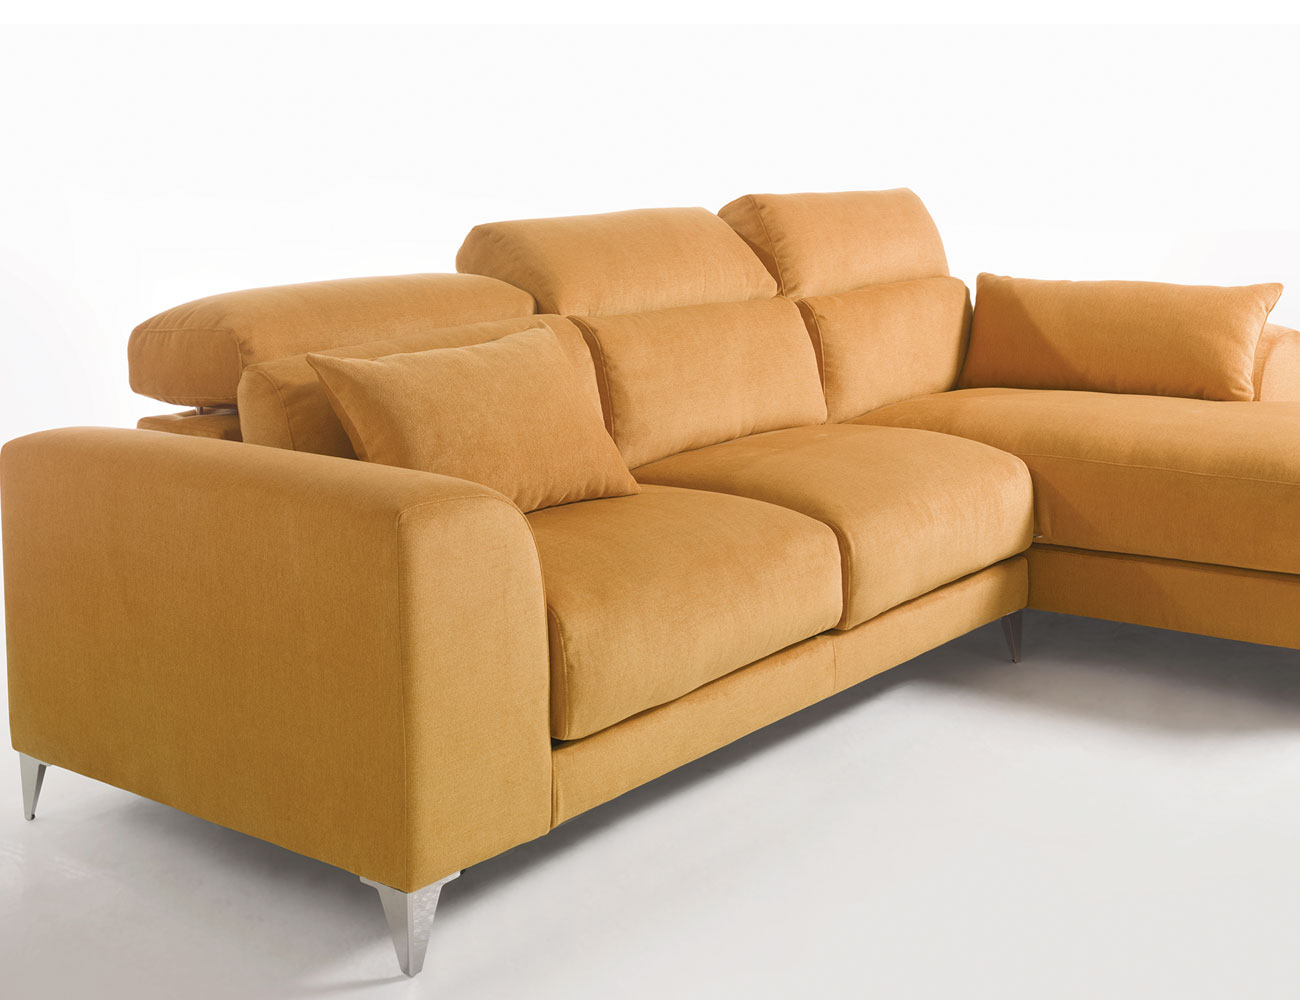 Sofa chaiselongue gran lujo decorativo patas altas amarillo 220